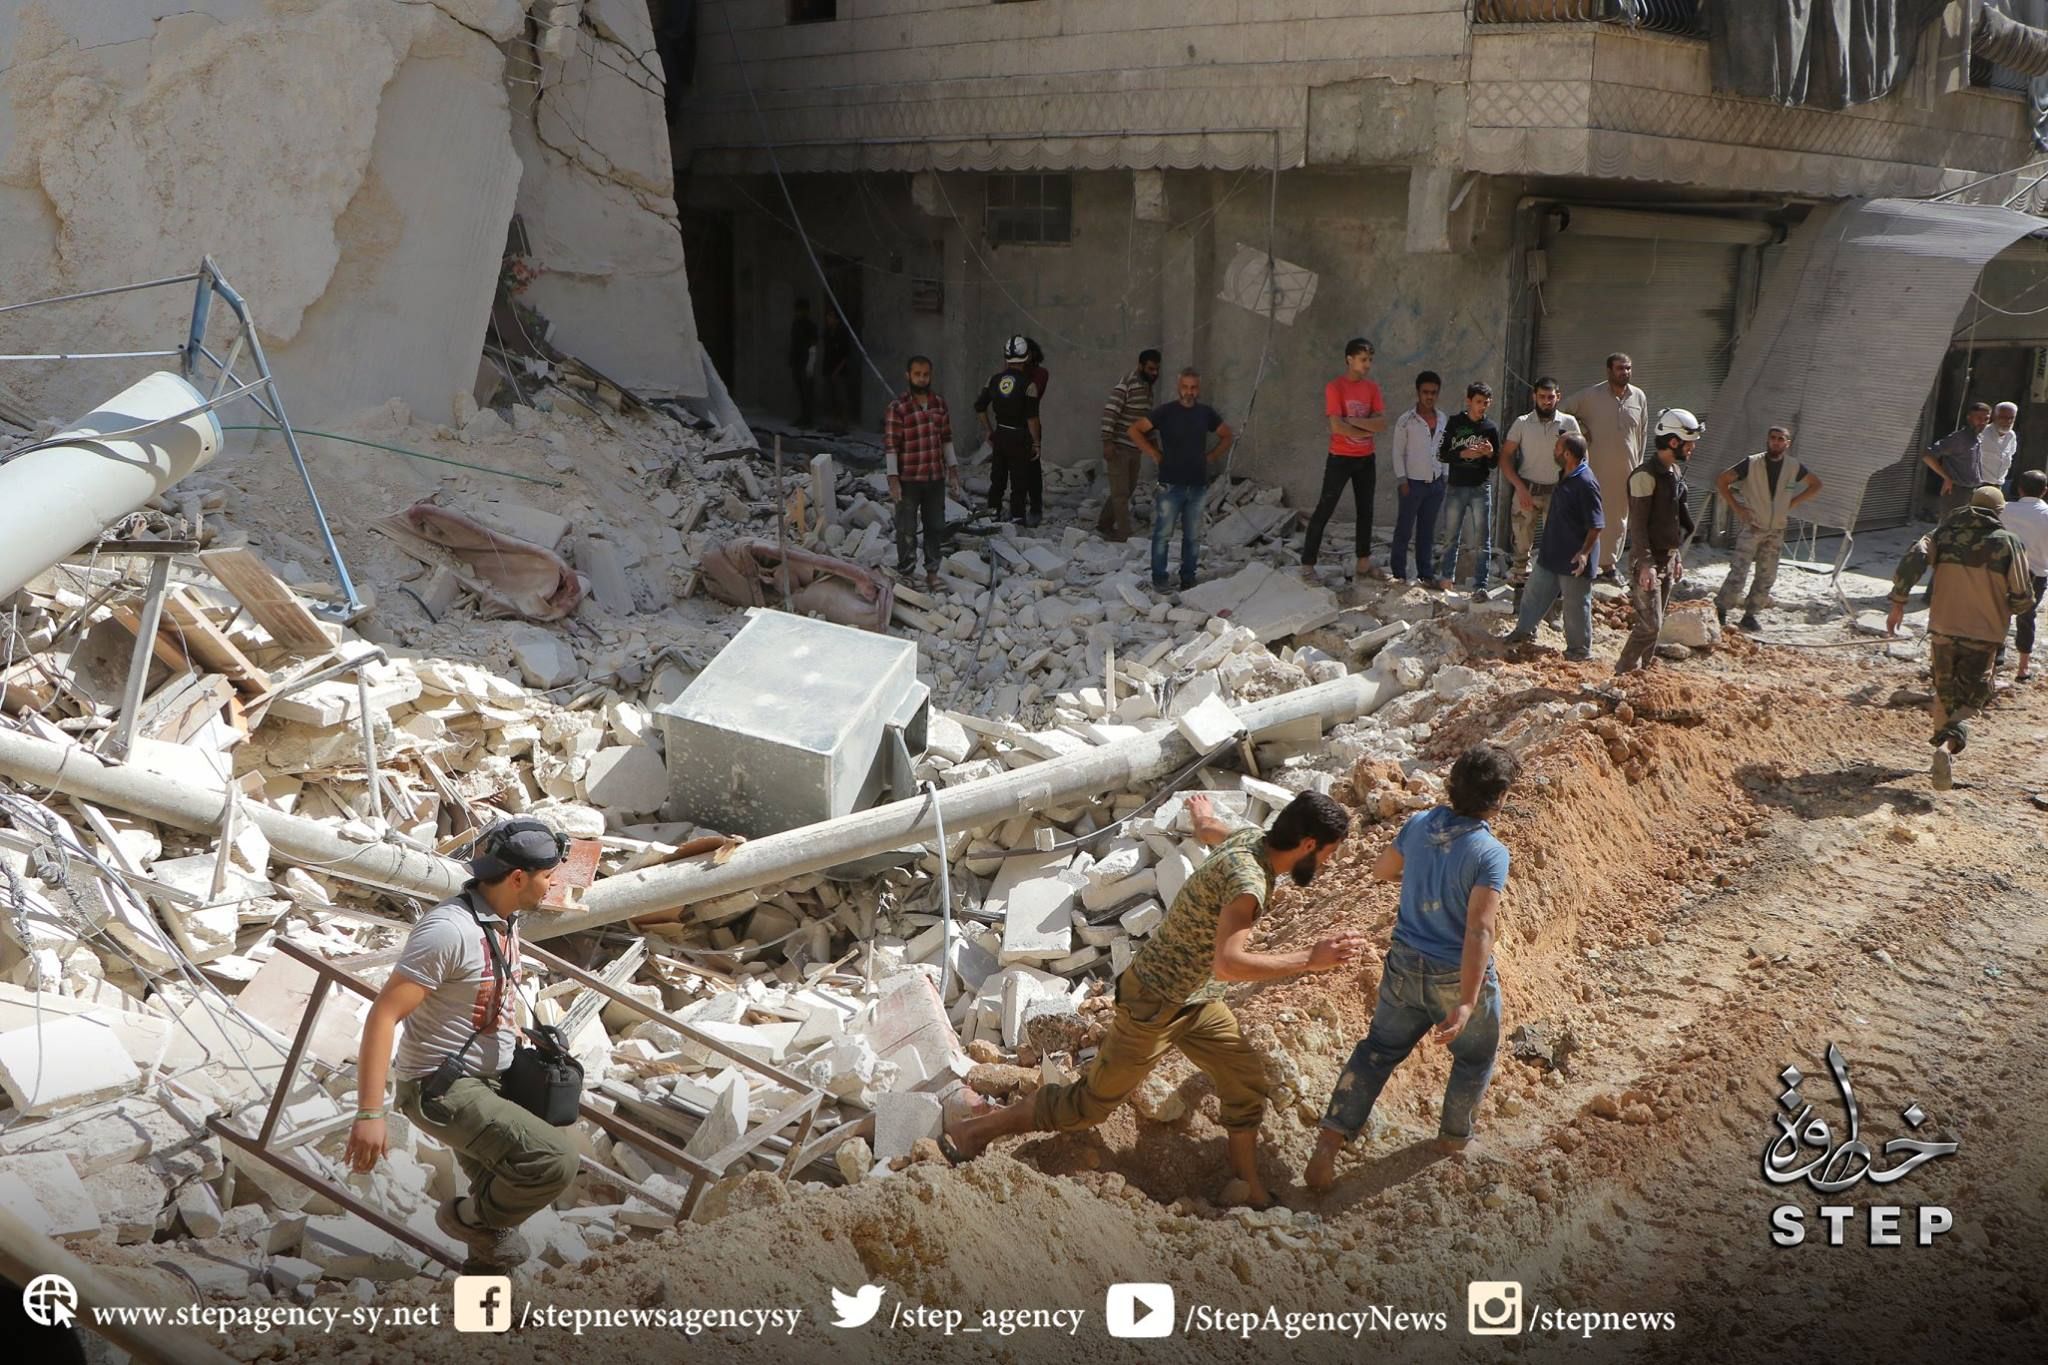 The White Helmets attend the scene of an allaged Russian strike on Al Ferdos, Aleppo on Oct 11th (via Step)